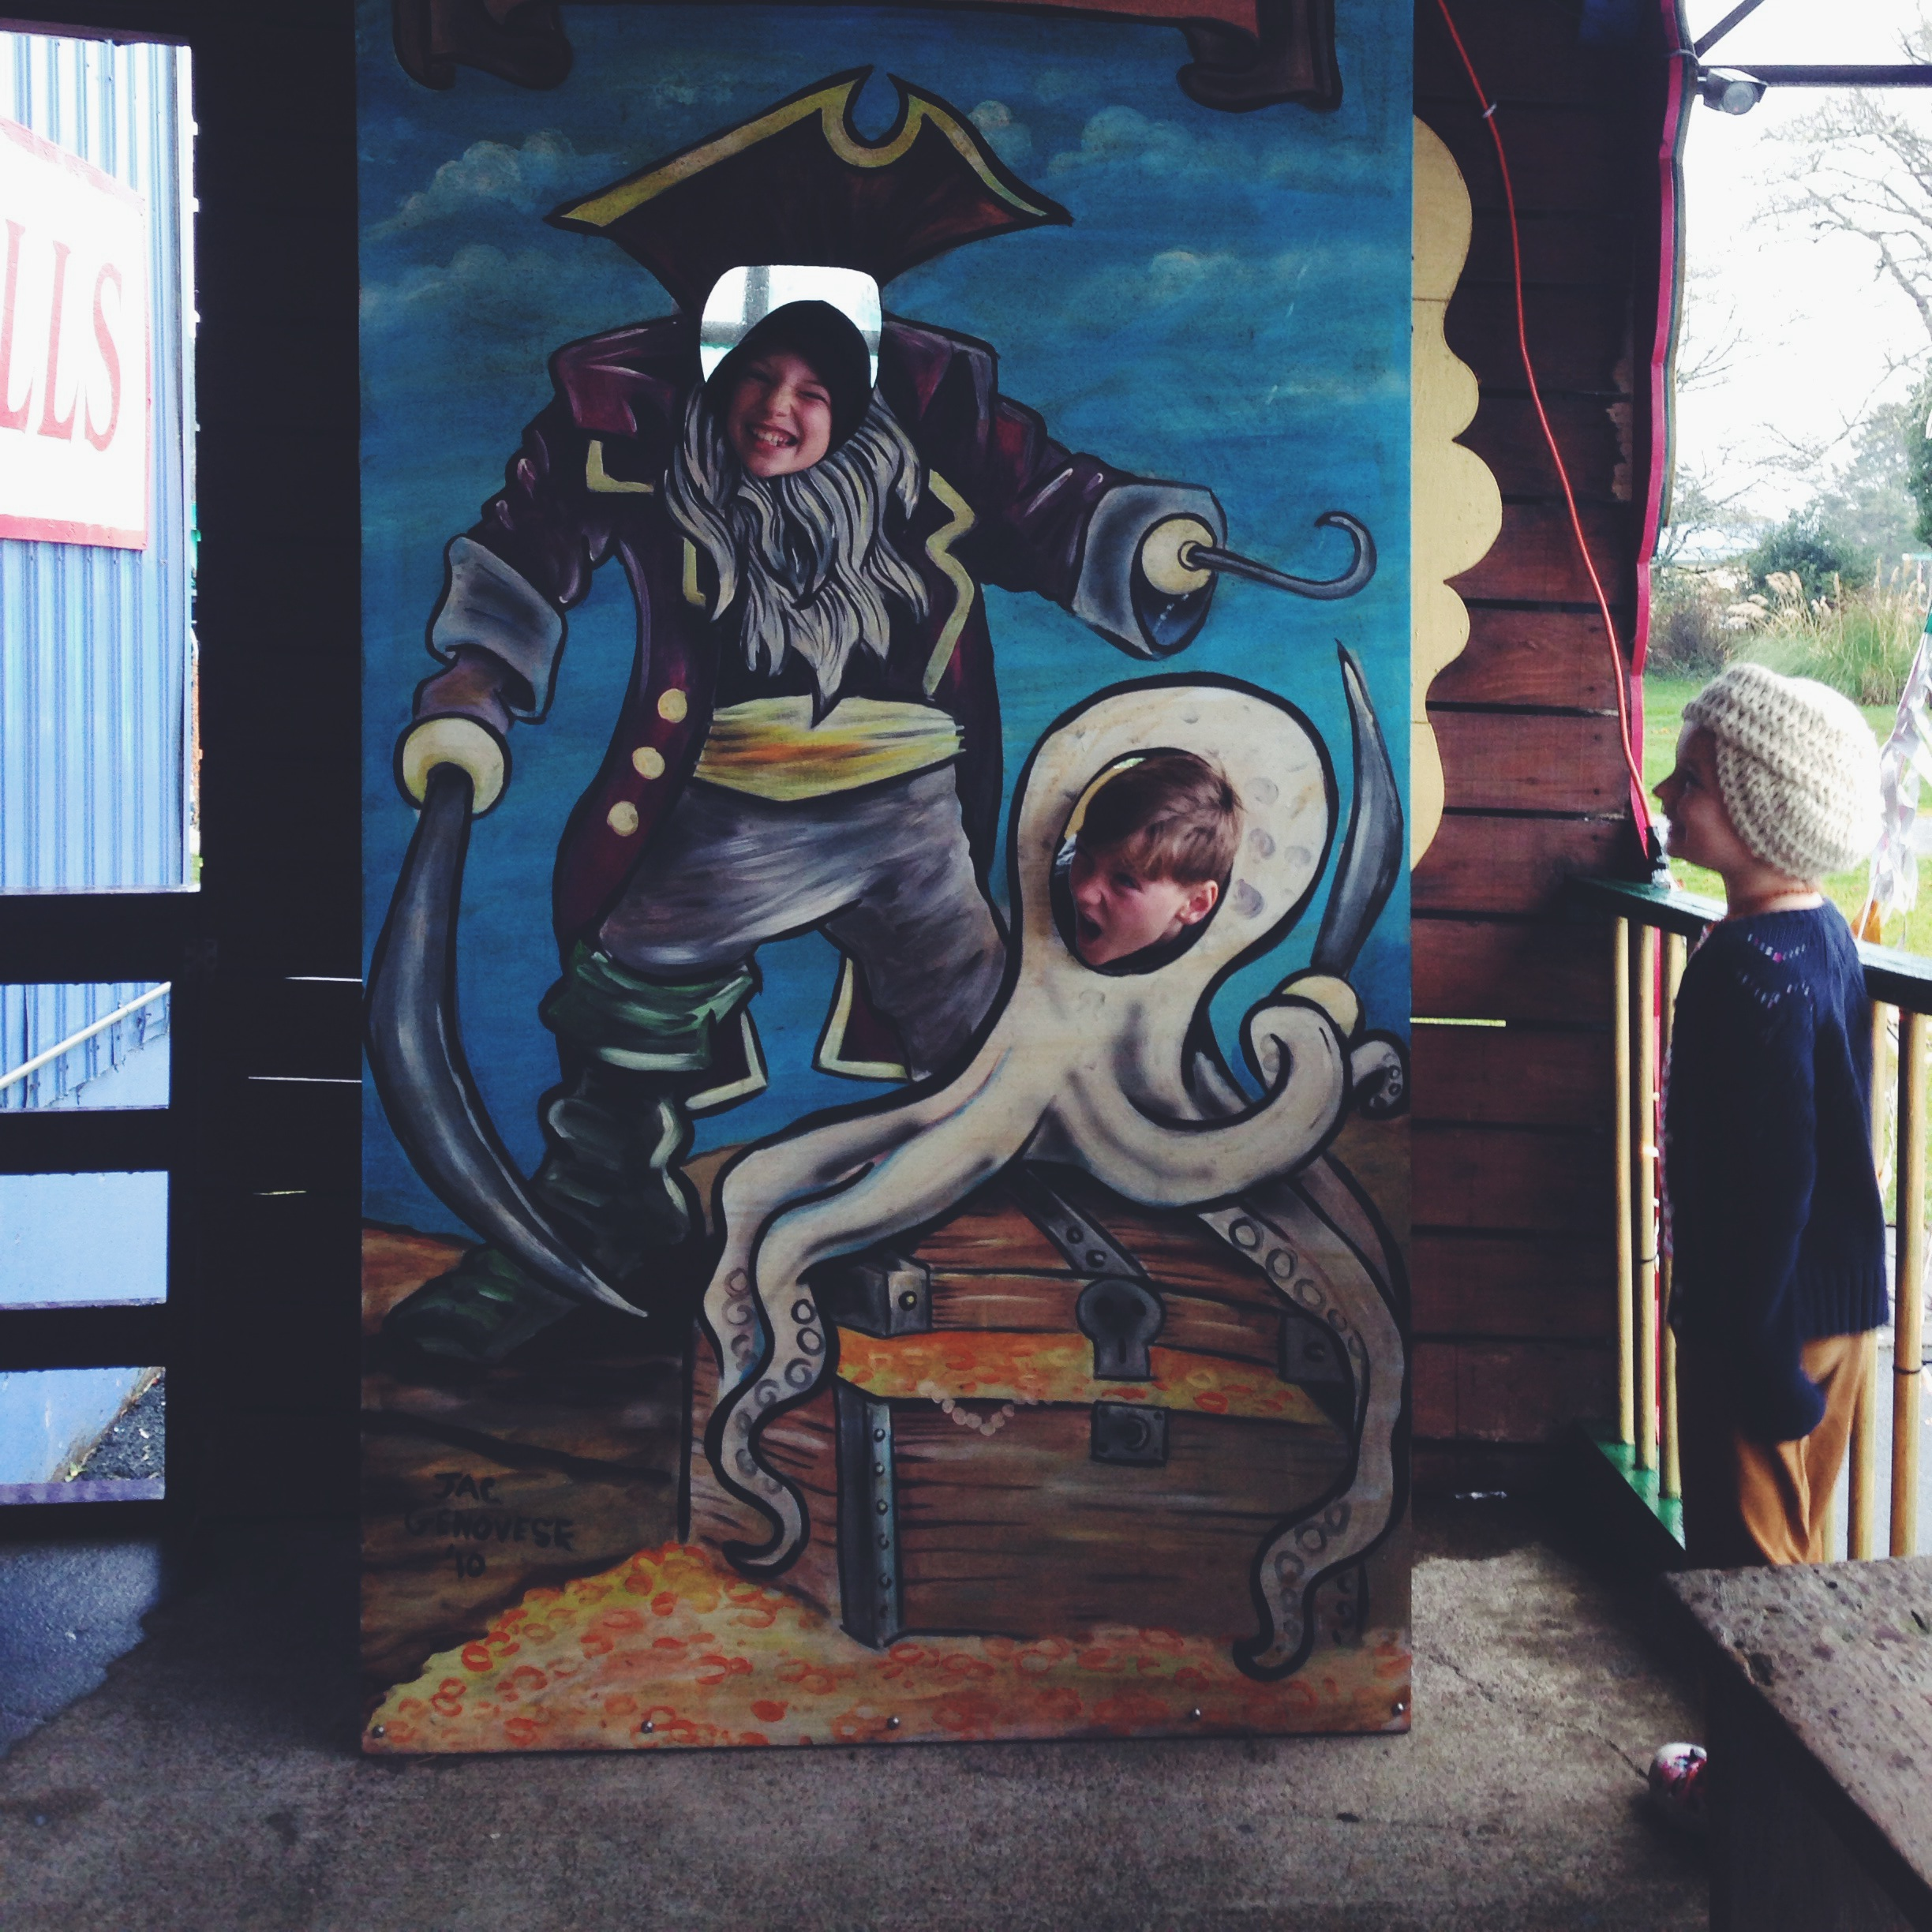 A pirate & his octopus sidekick at Pirate's Plunder